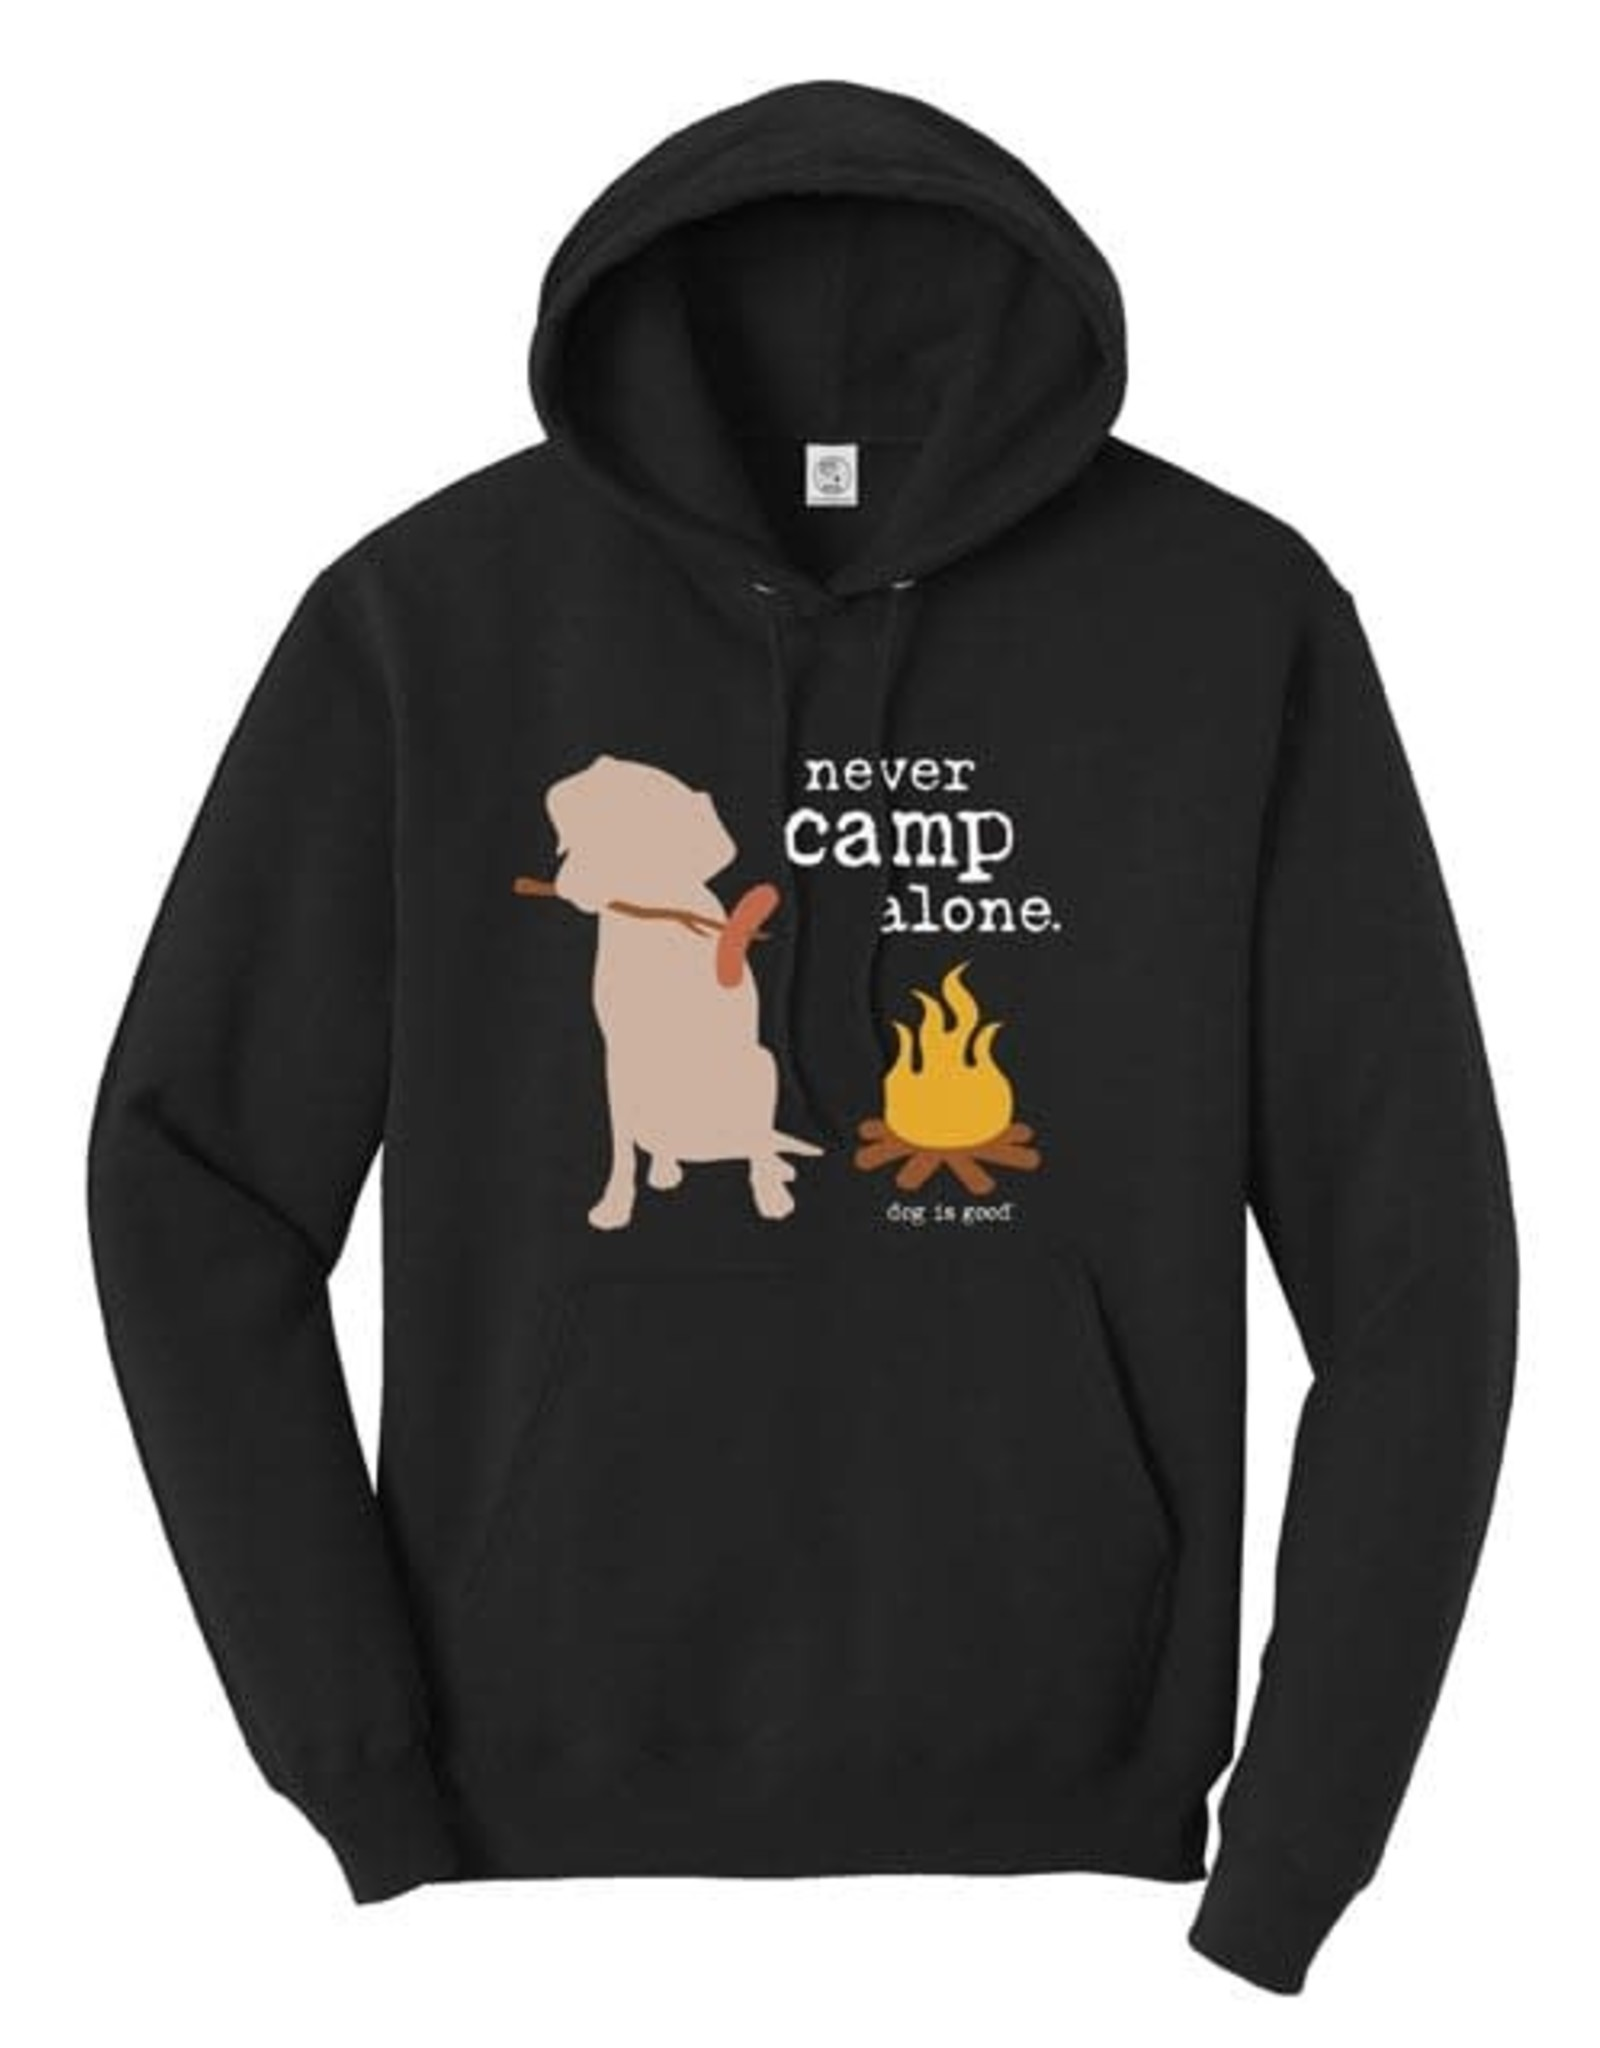 Dog is Good Clothing - 2XL Hoodie Never Camp Alone